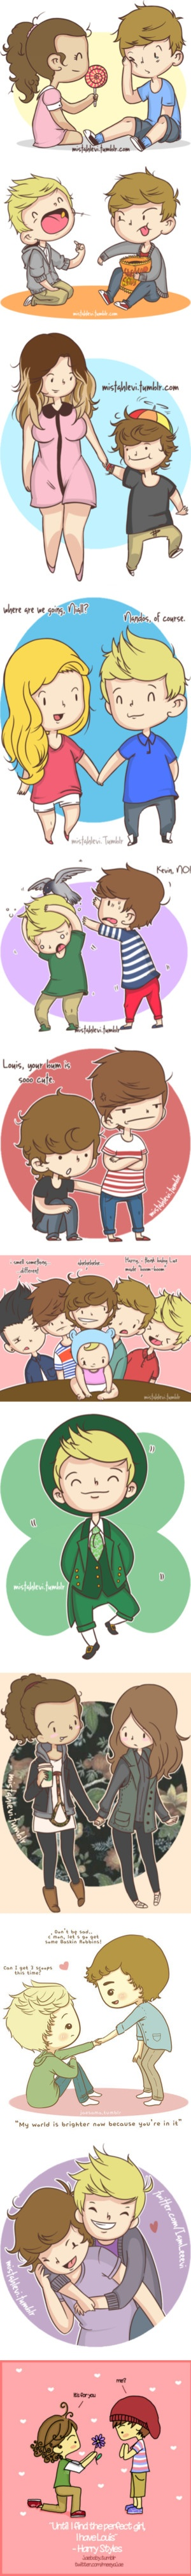 """One Direction Cartoons 3"" by victoria-peerson ❤ liked on Polyvore"